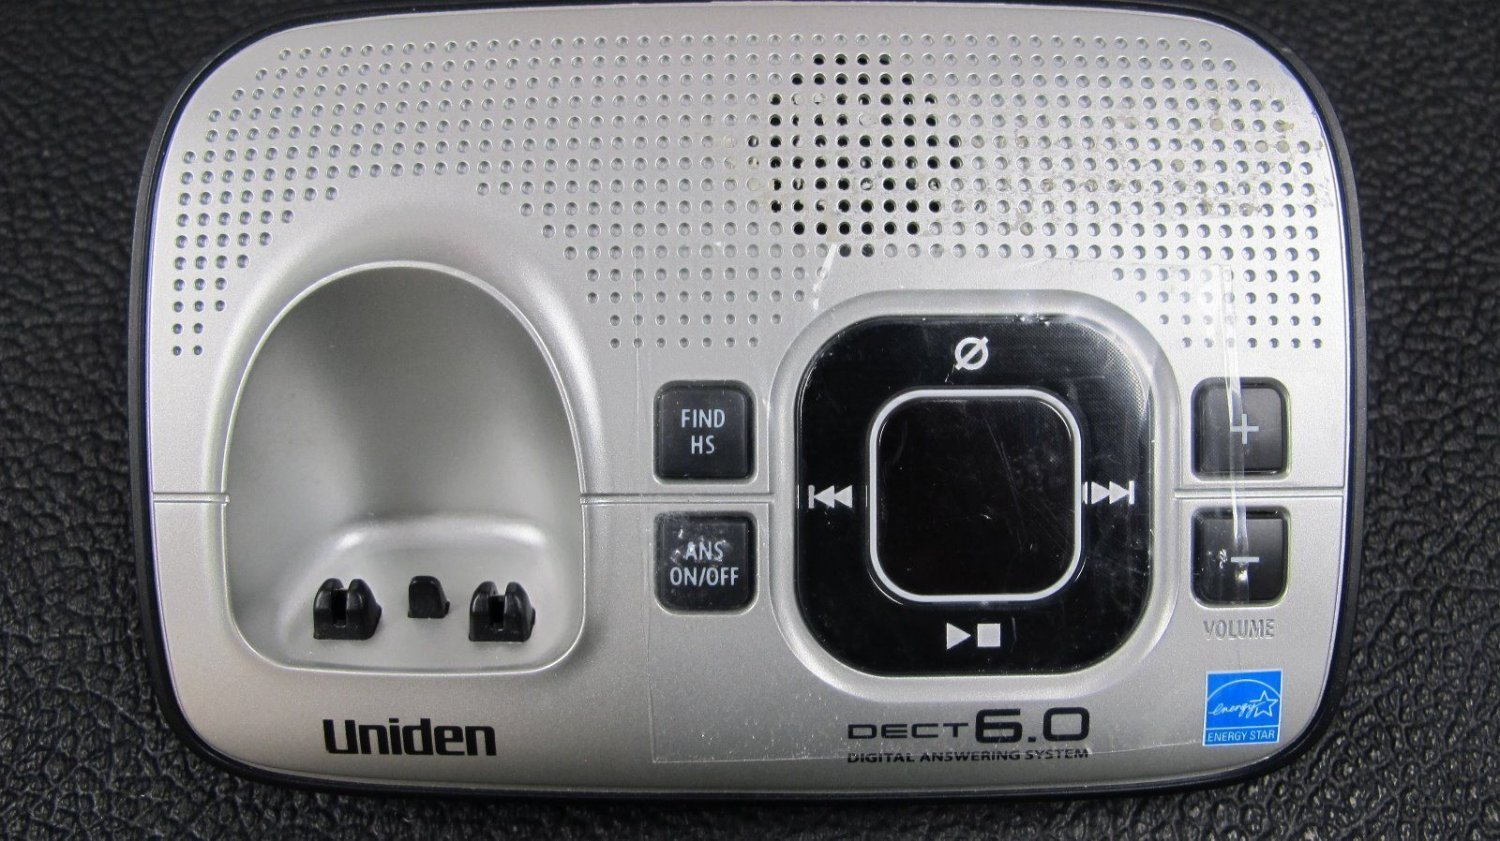 UNIDEN D1680 2 Main CHARGER BASE - charging stand cradle Answering System DECT6